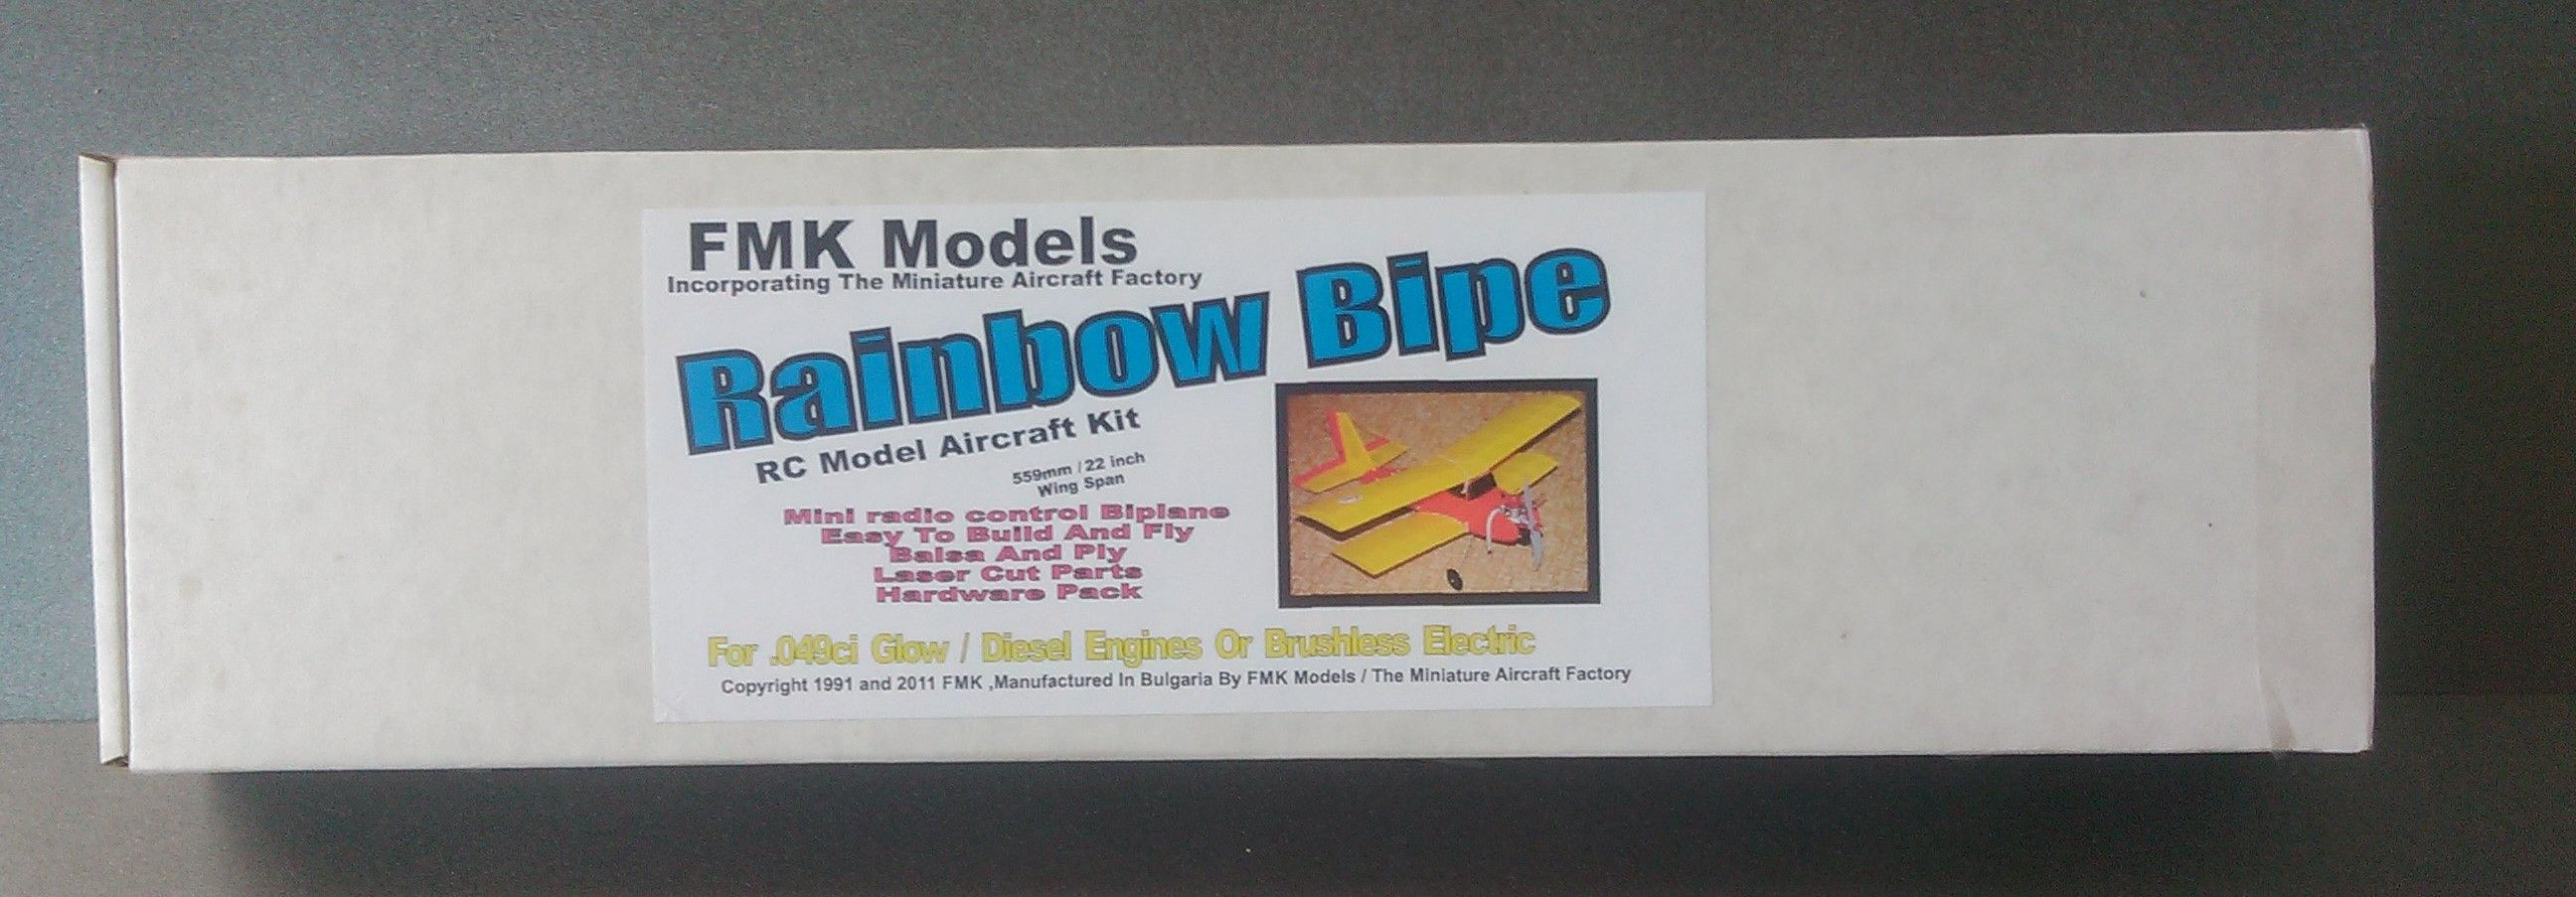 FMK Models Rainbow Bipe laser cut kit ( parts photo )( Miniature Aircraft Factory ) KIt for Cox 049 or brushless electric